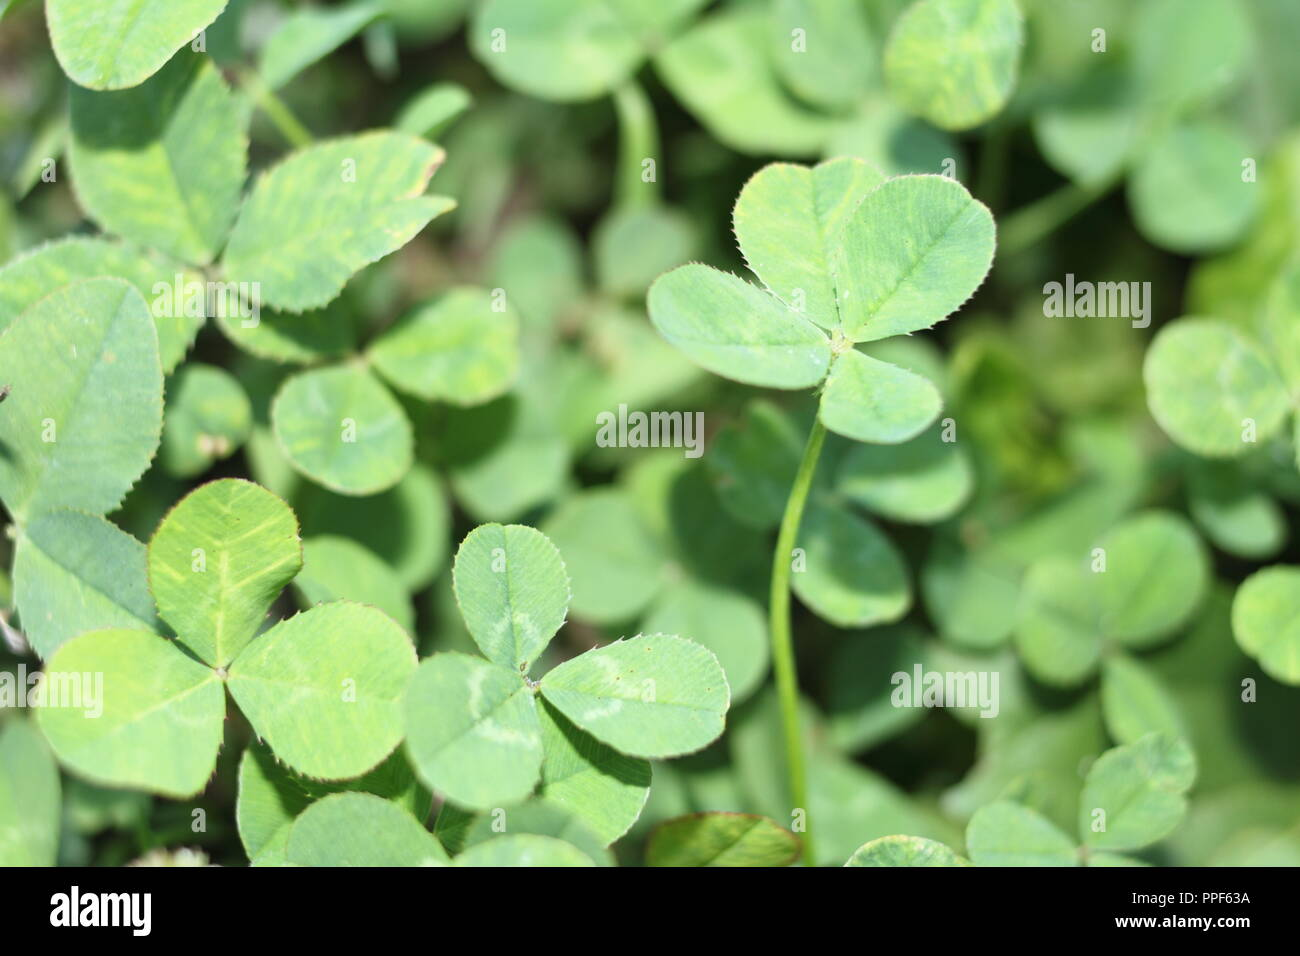 4 Leaf Clover Among 3 Leaf Clovers Stock Photo 220380926 Alamy